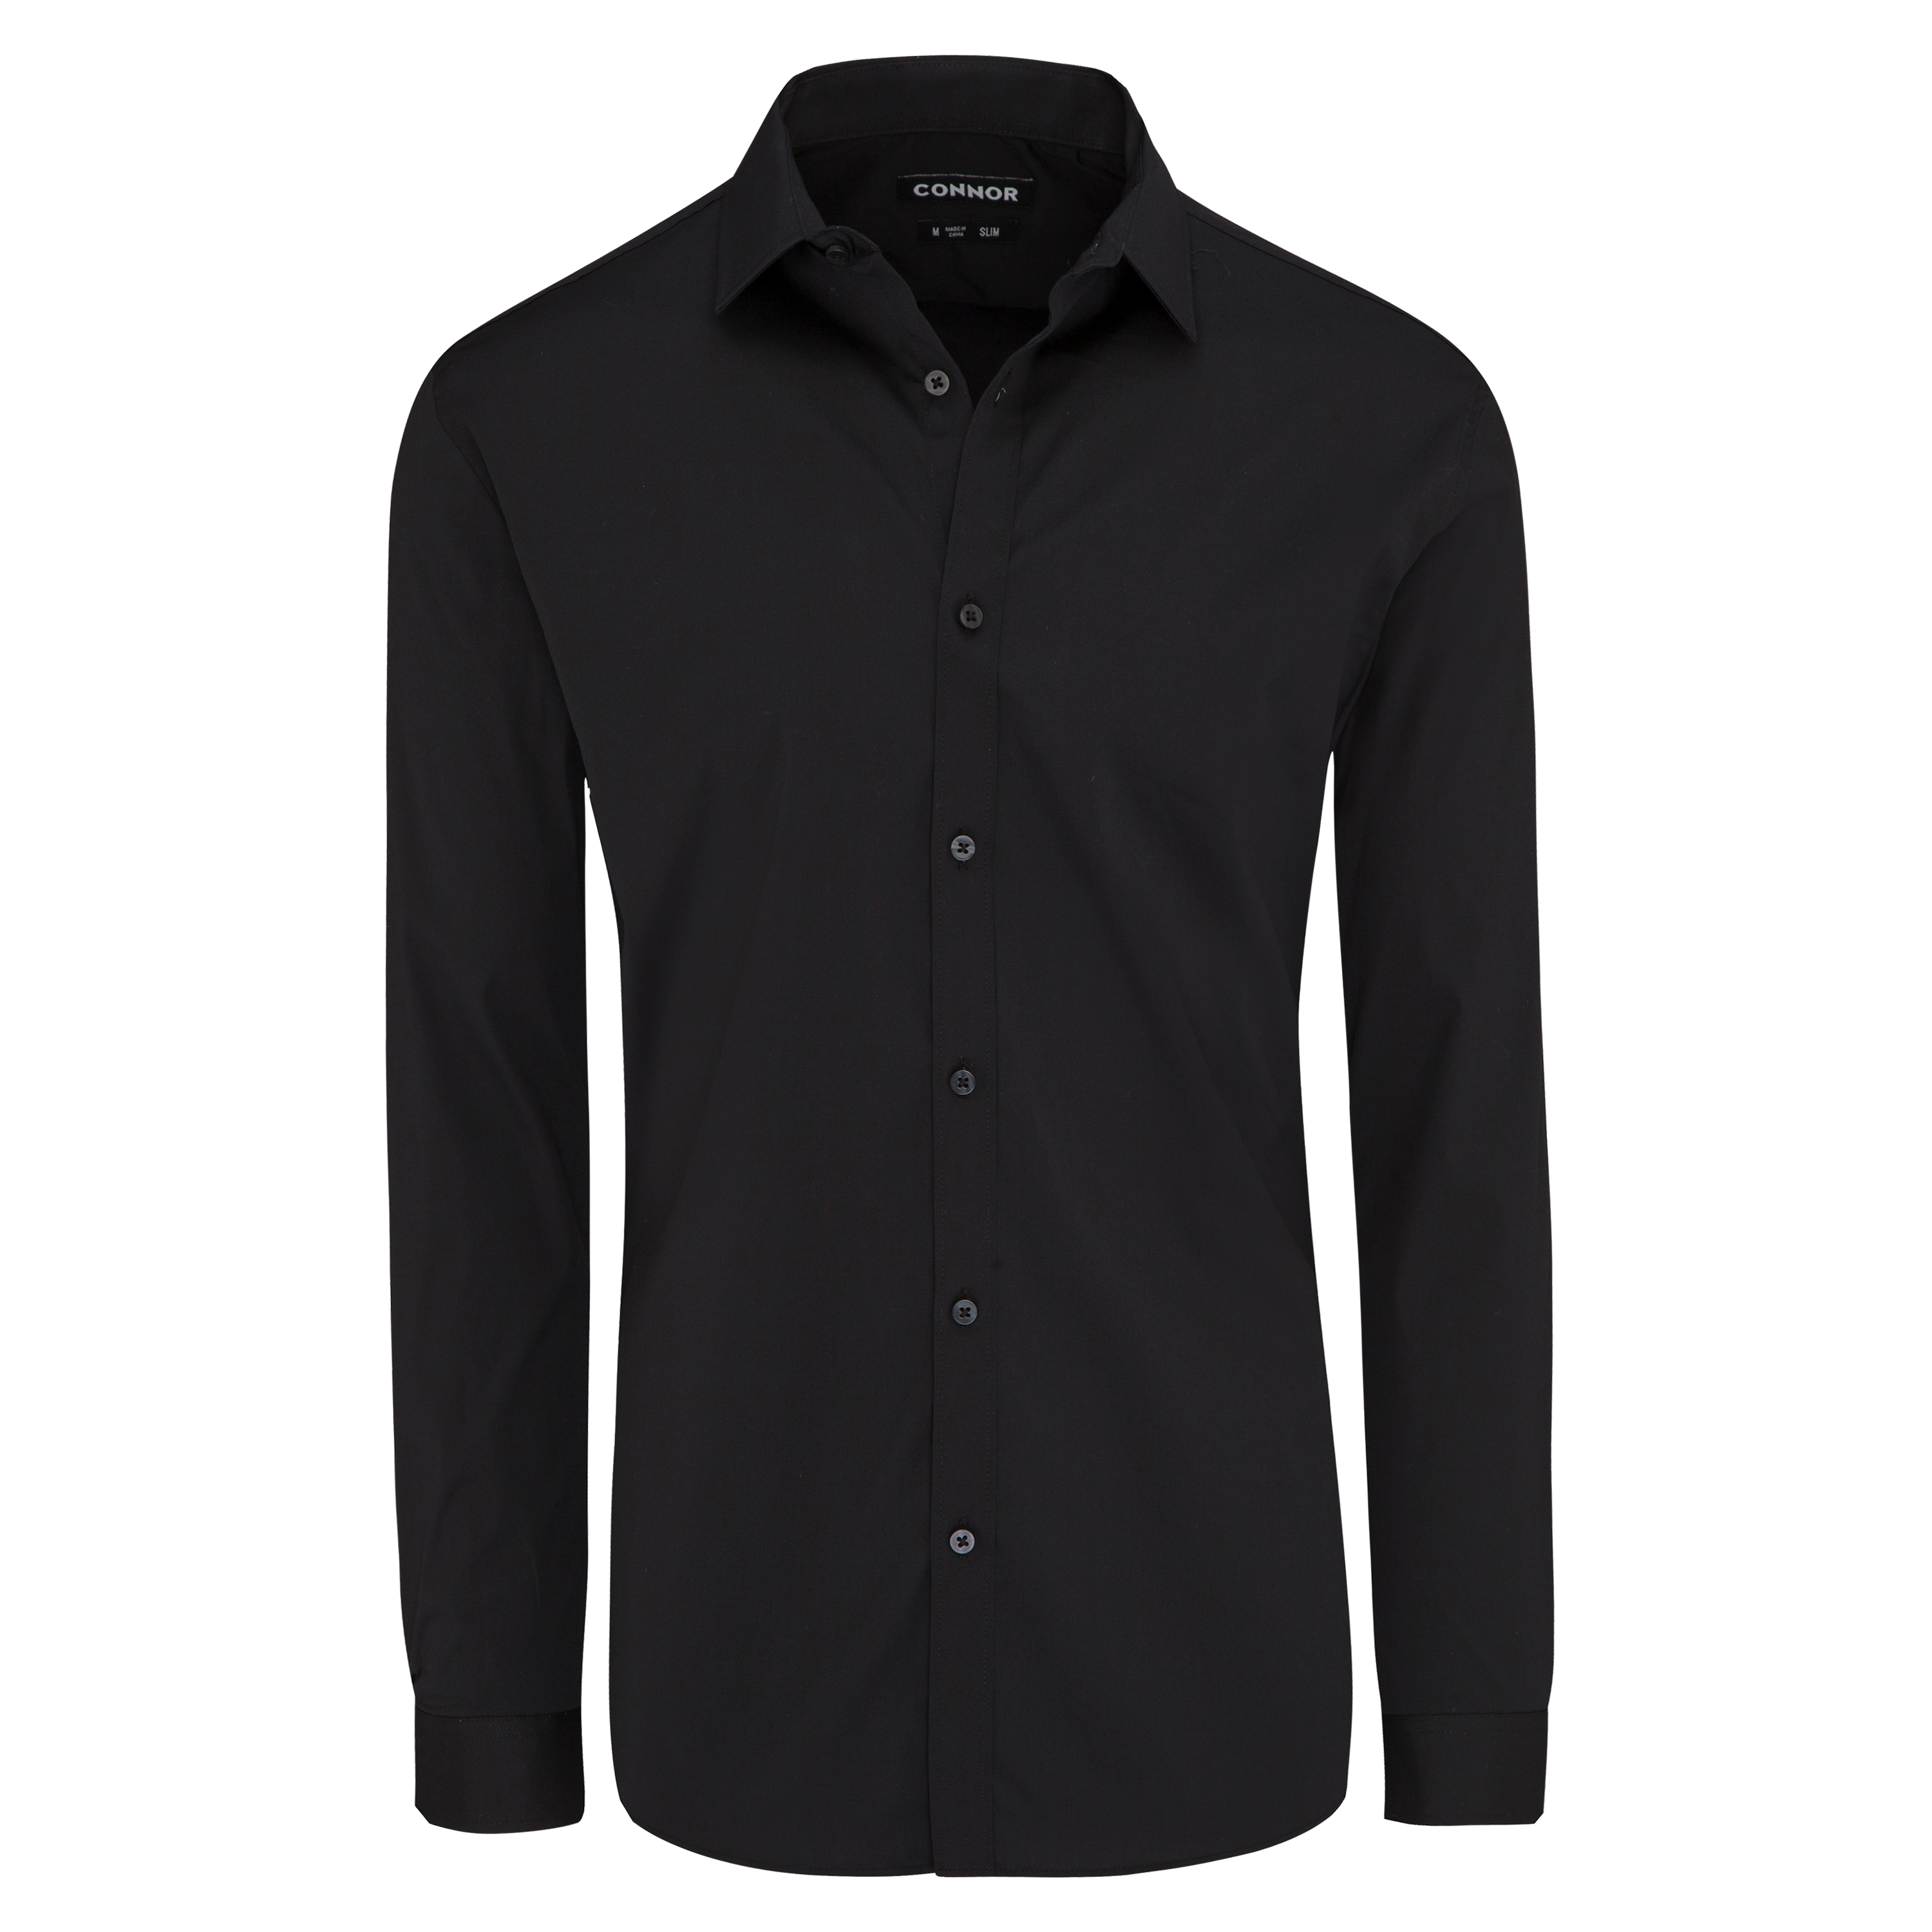 CYRUS SLIM DRESS SHIRT.